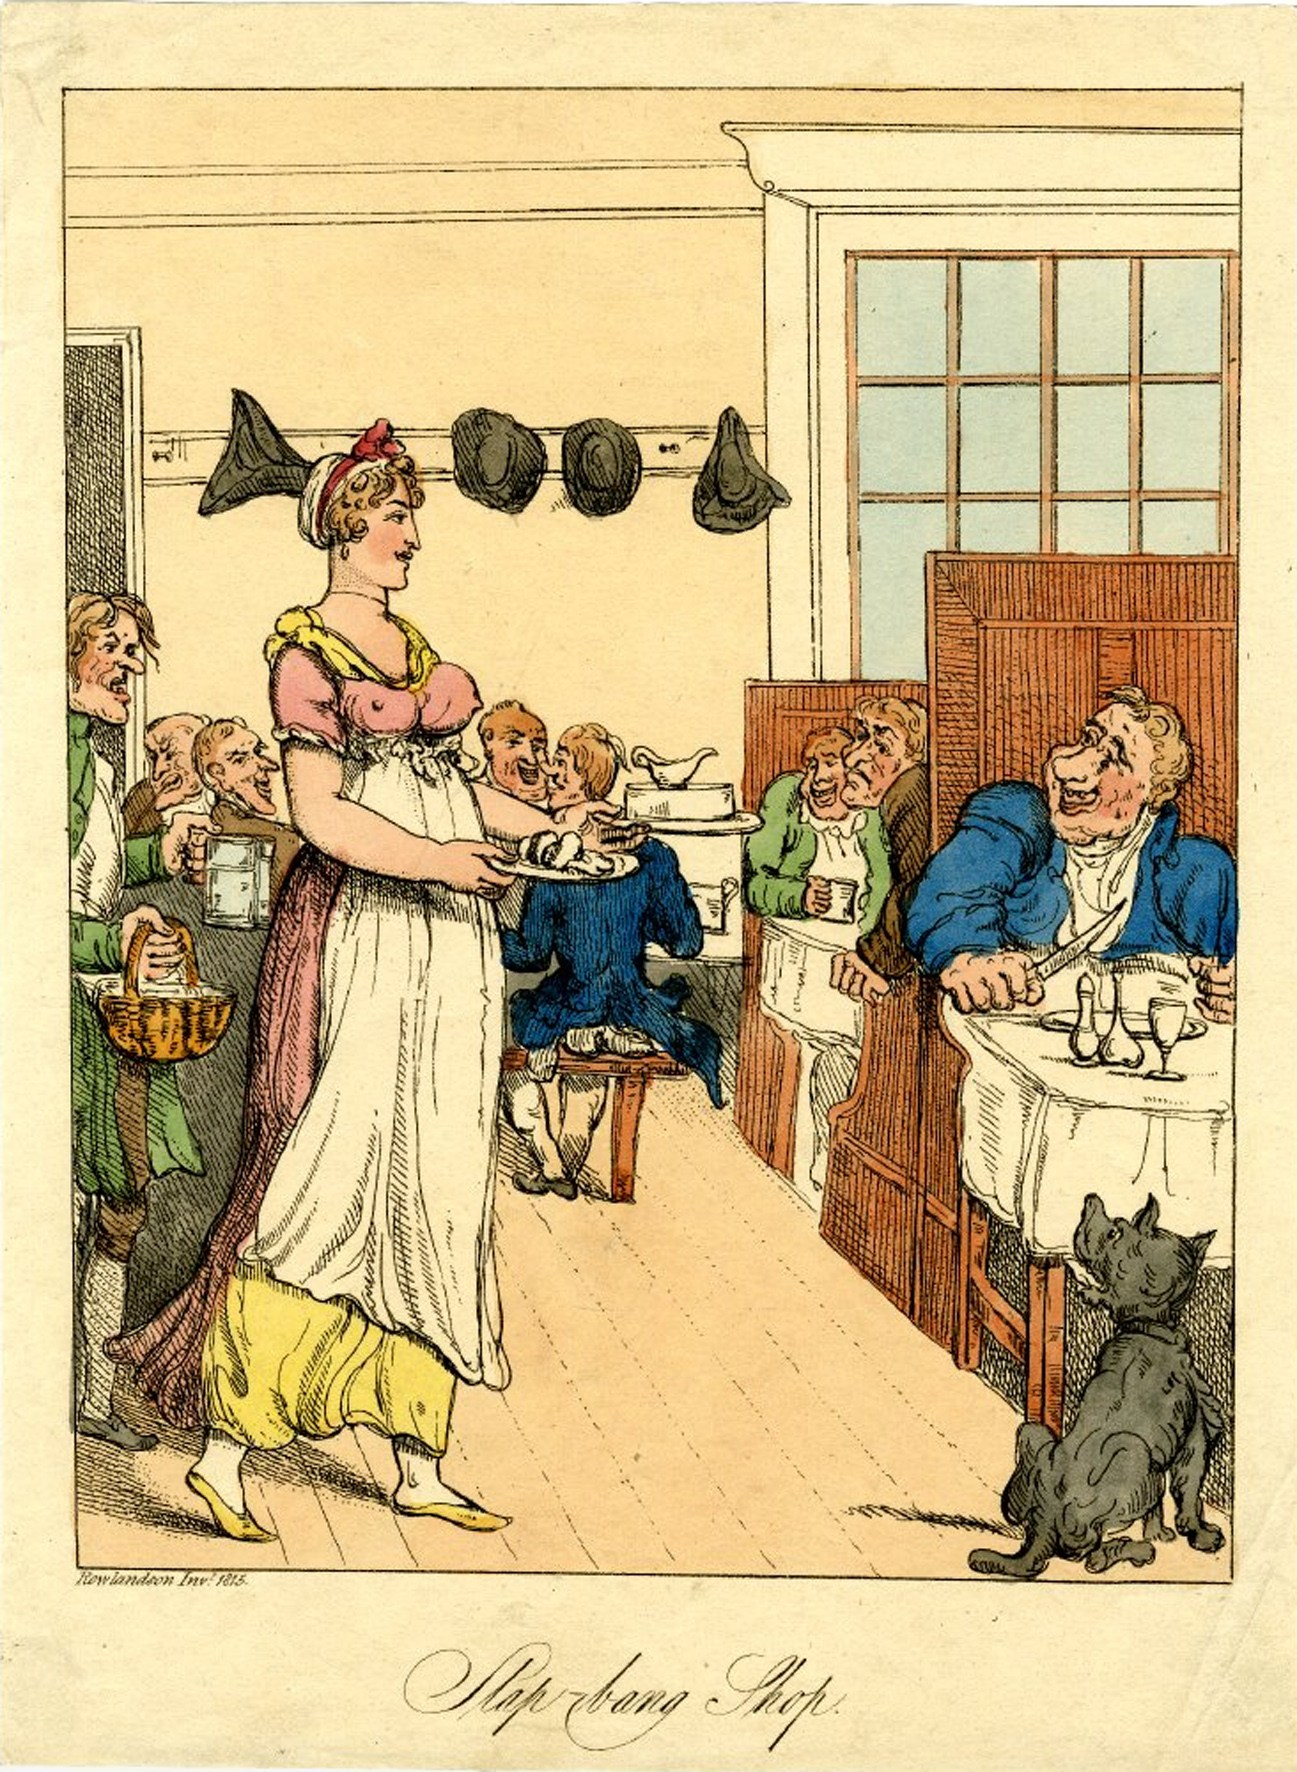 The Slap-Bang Shop, Rowlandson (1815)